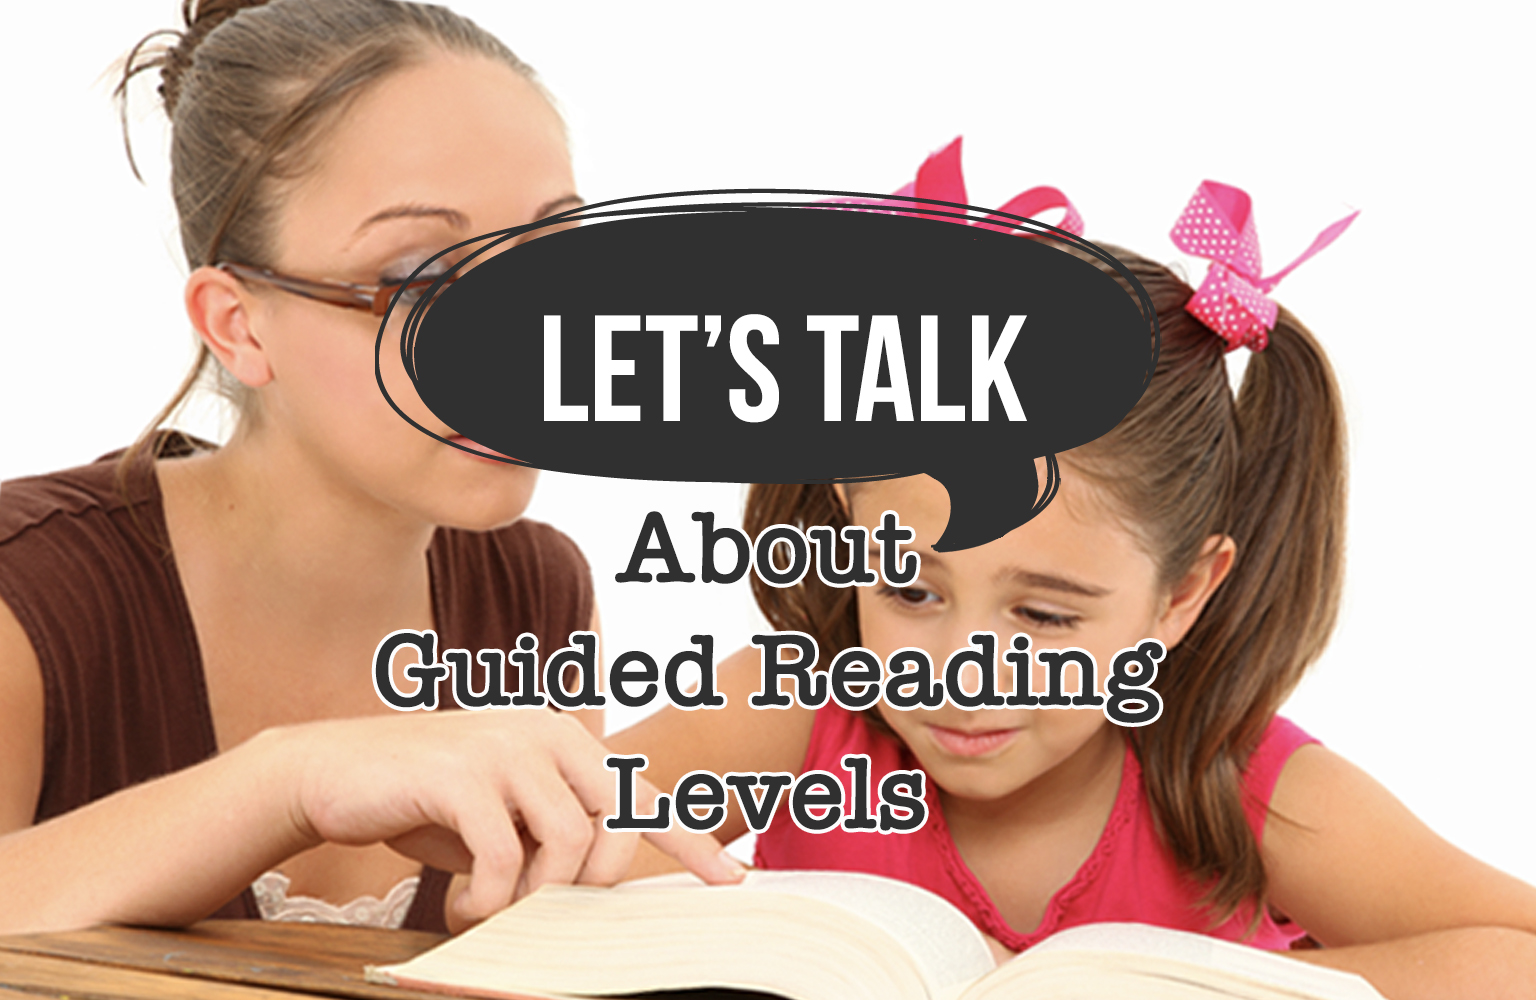 How to use a deeper understanding of guided reading levels to support student growth without defining students by a level label.